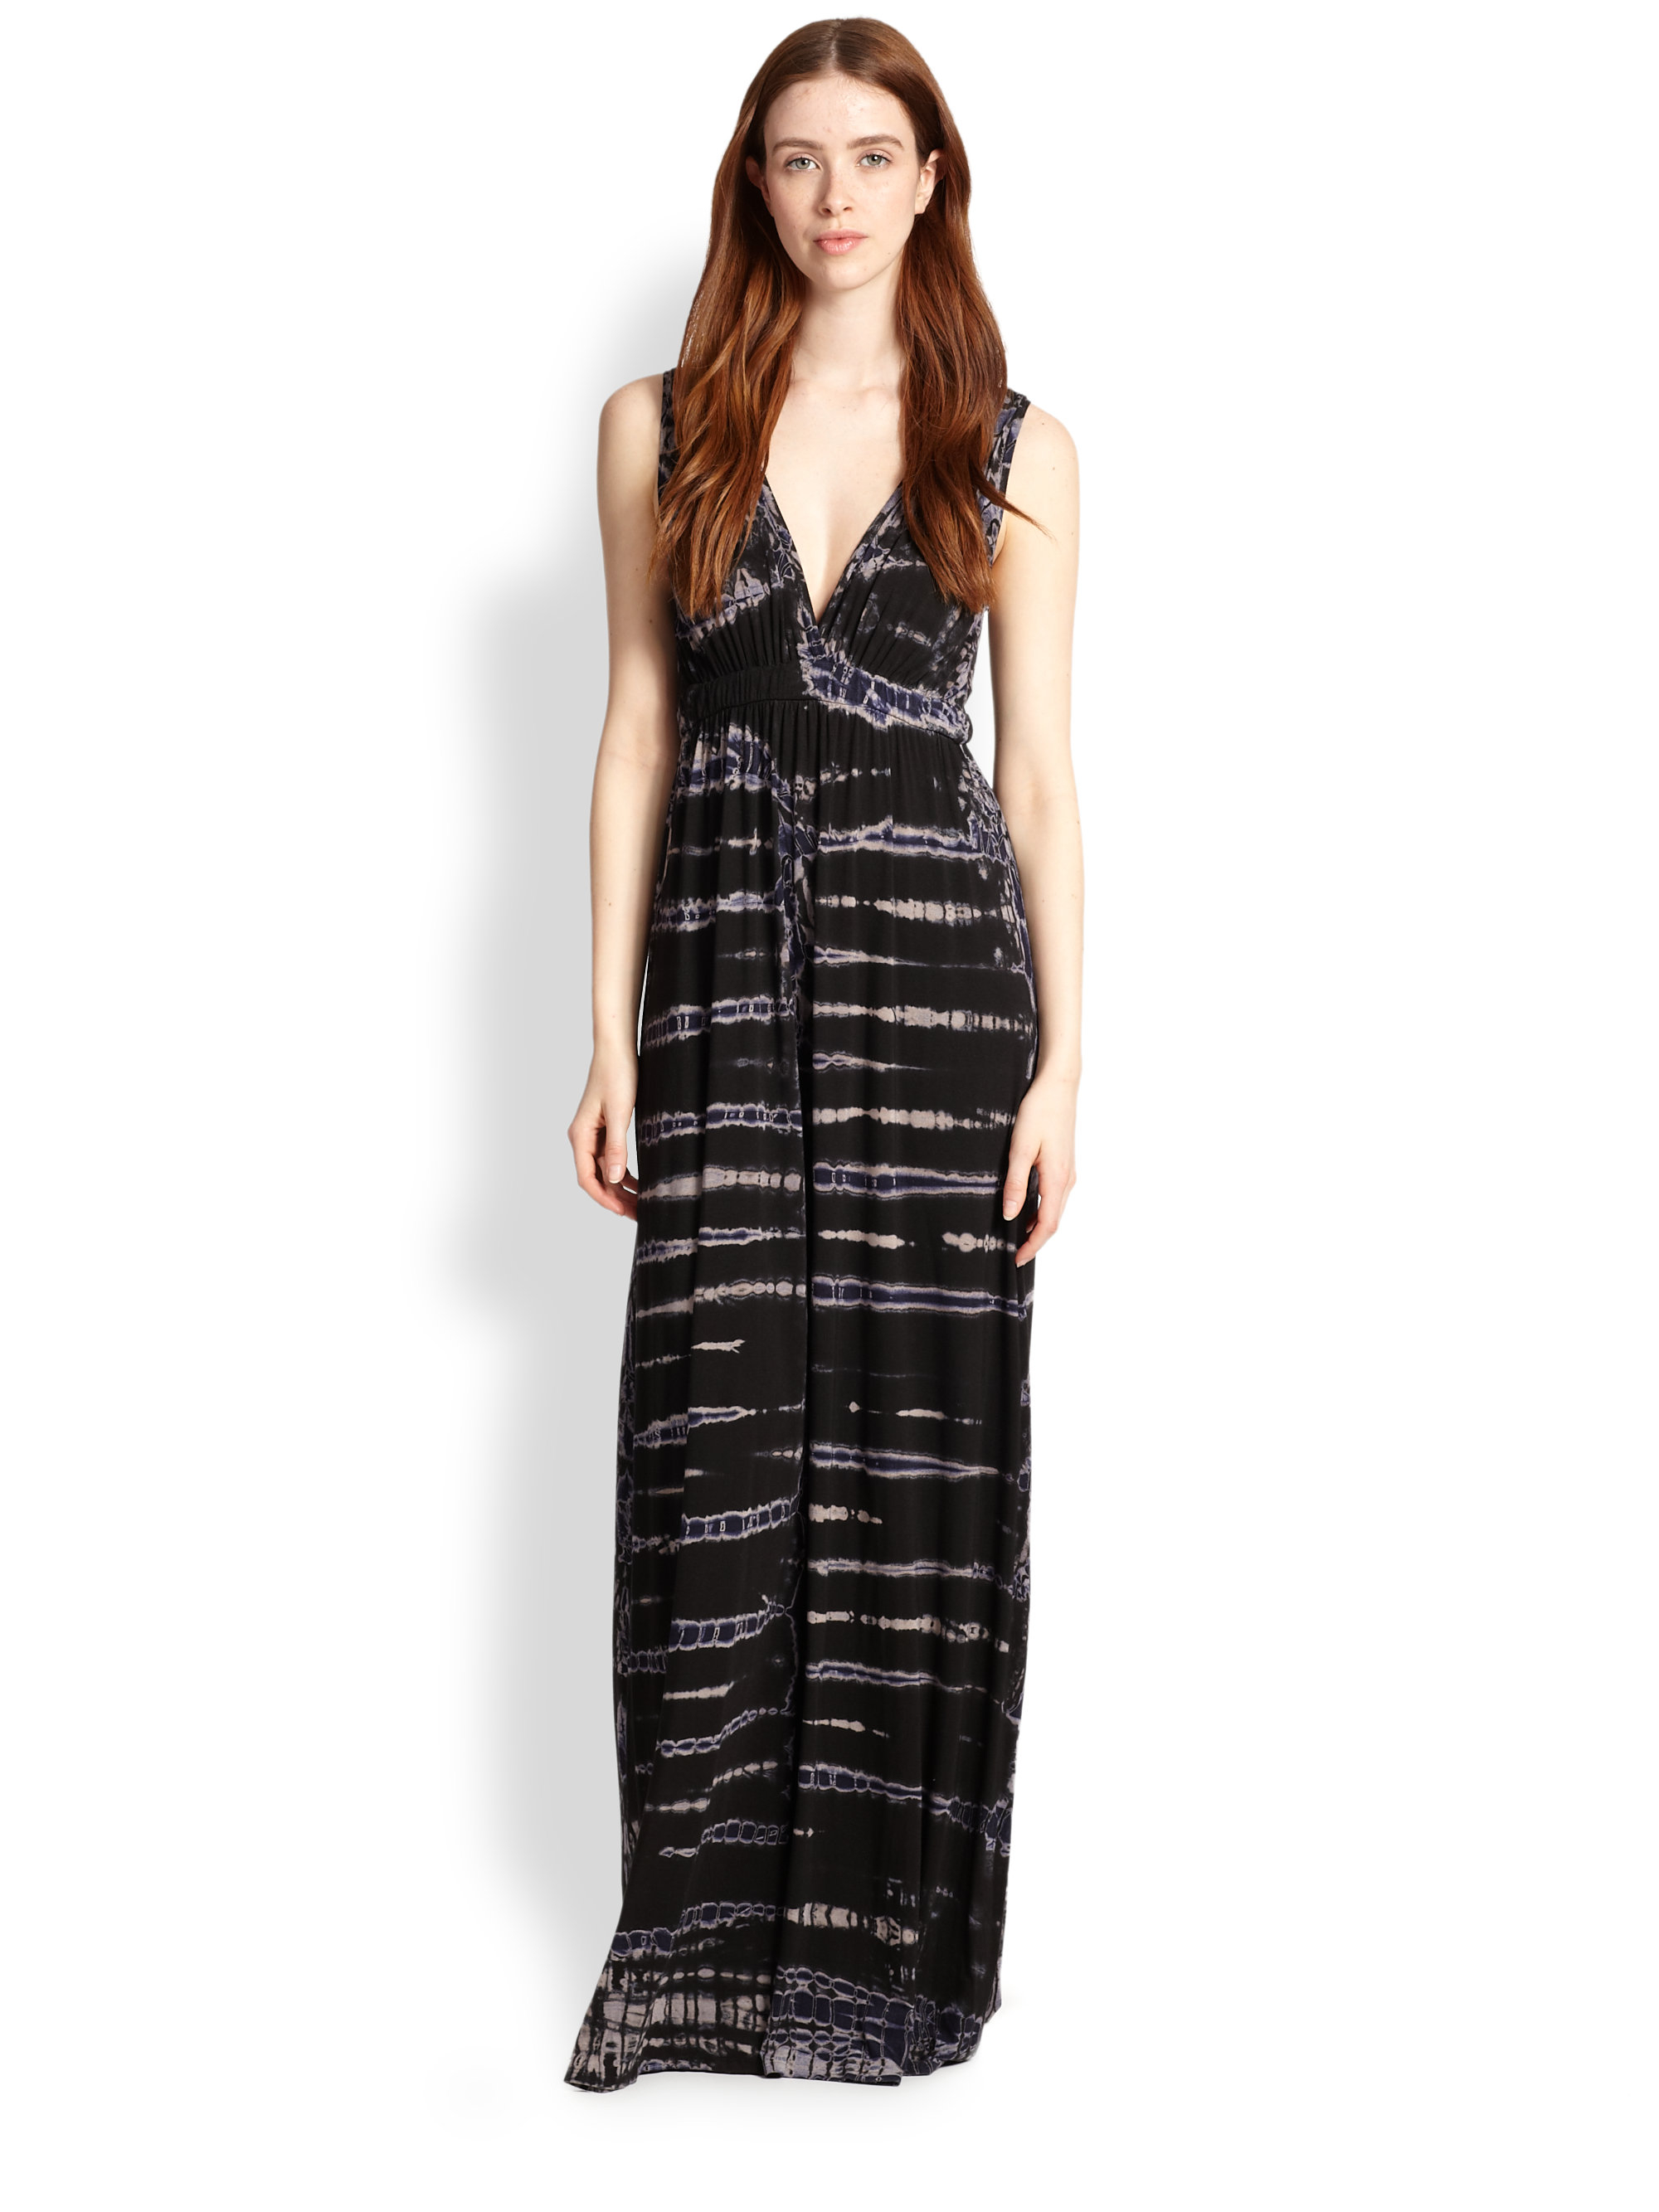 Gypsy 05 Bamboo Tiedye Maxi Dress in Black | Lyst